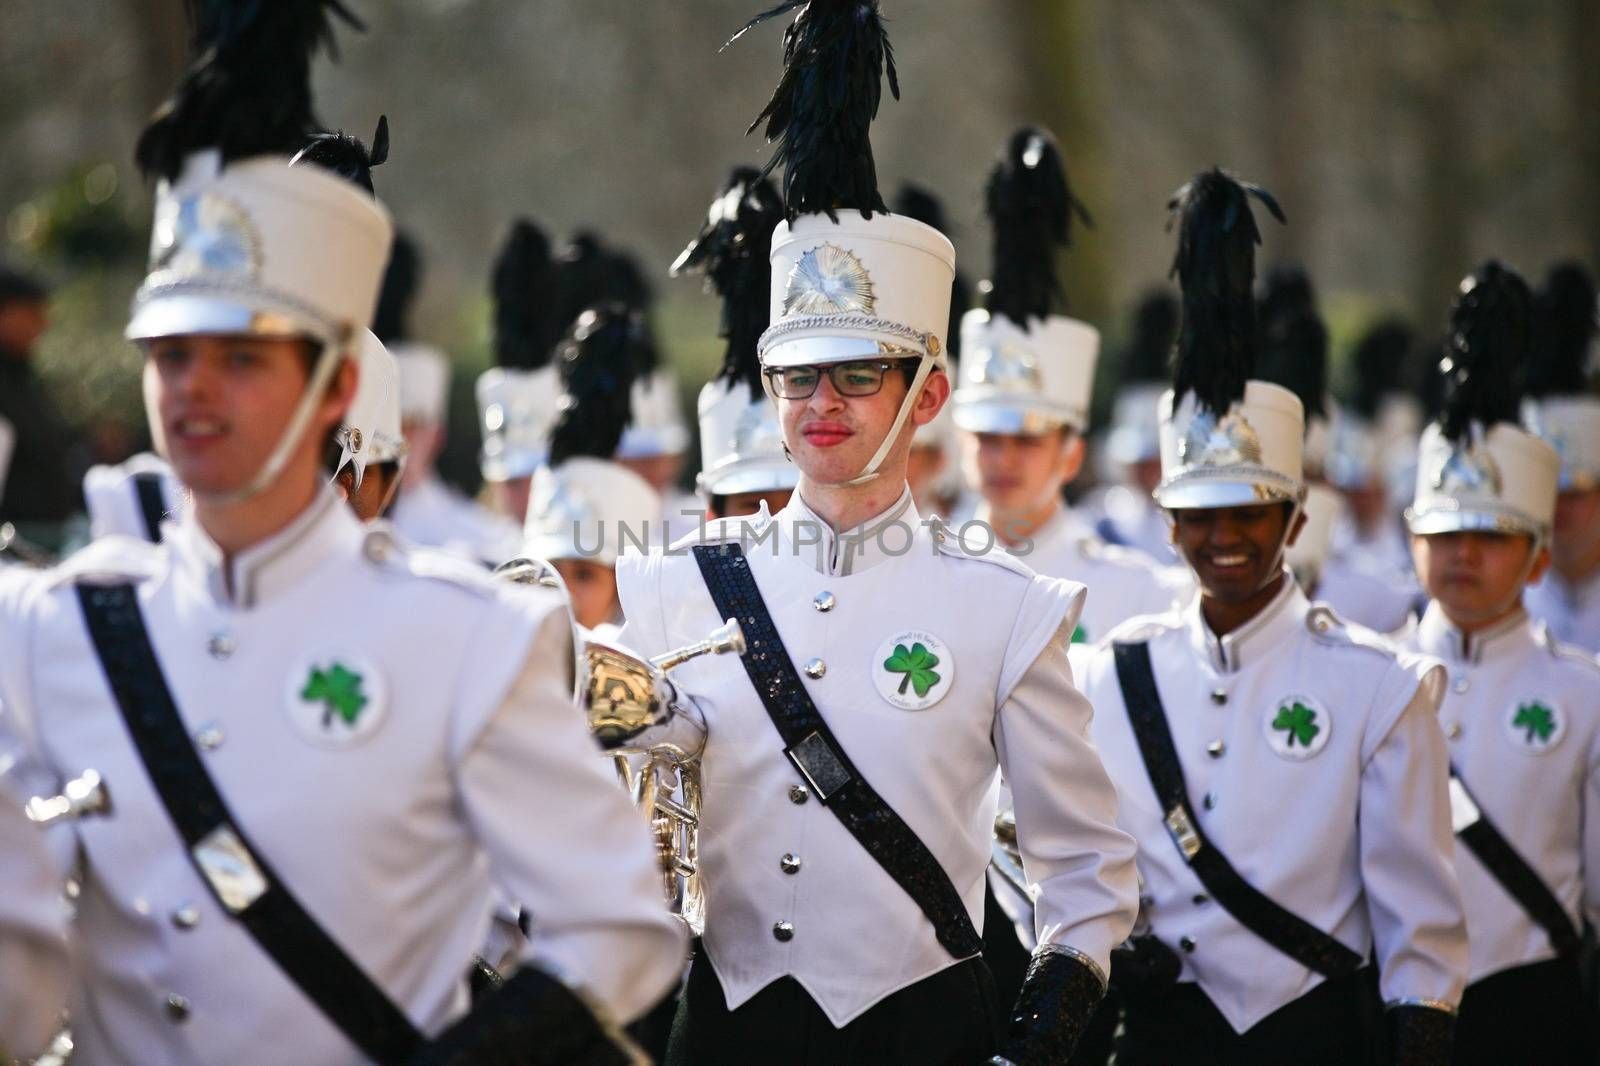 UNITED KINGDOM, London: Participants are pictured during St Patrick's Day parade near Trafalgar Square in London on March 13, 2016.